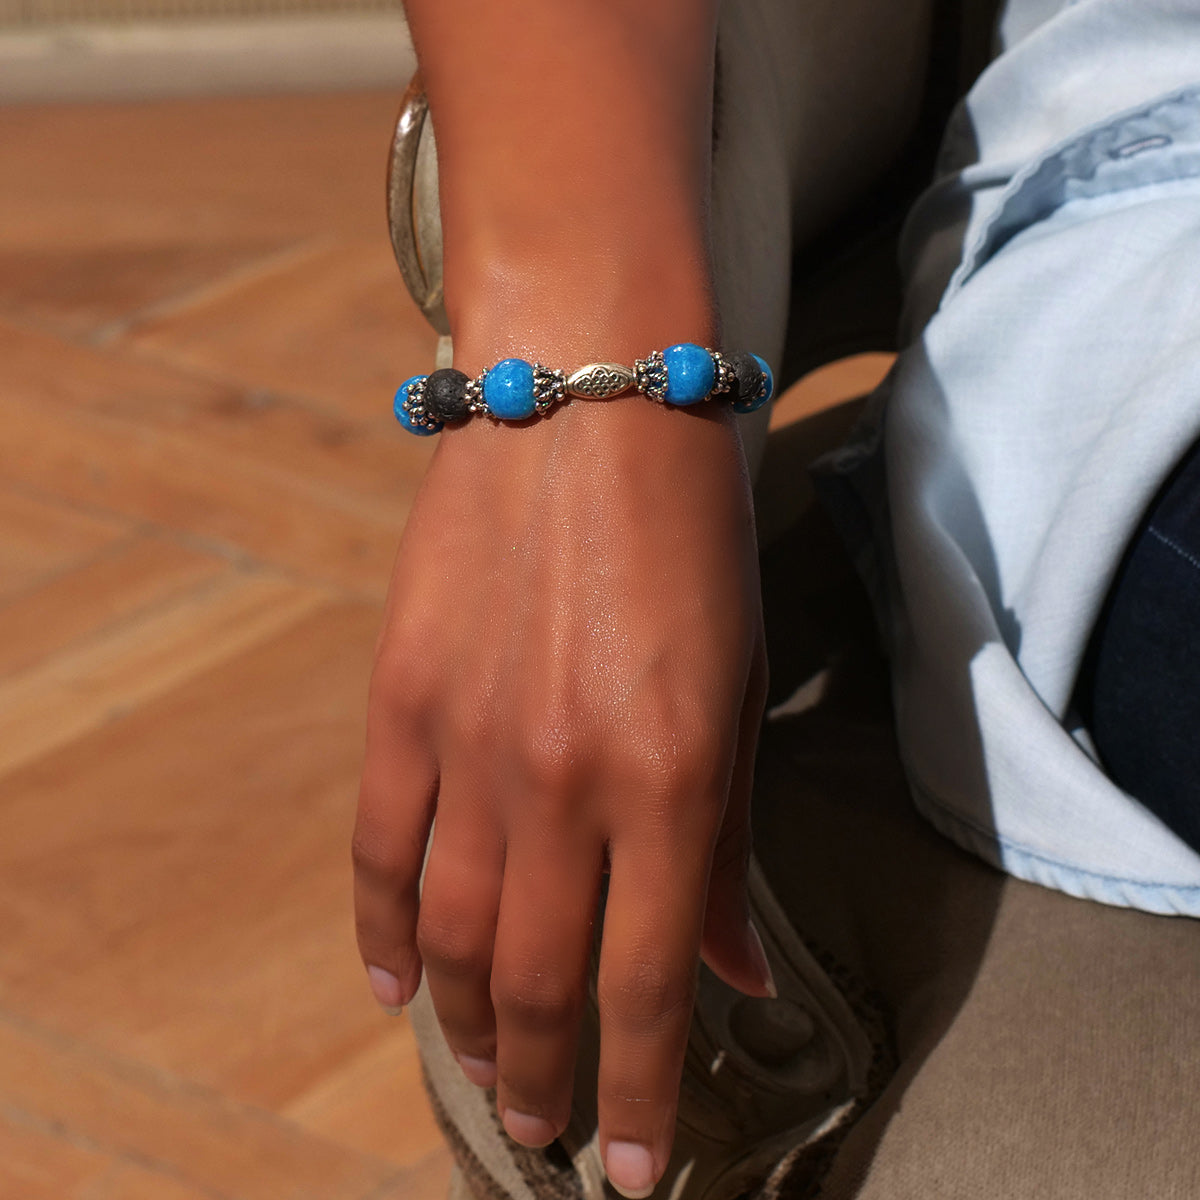 Women's Bracelet in Sky Blue Faience and Black Lava - Em Hotep Collection